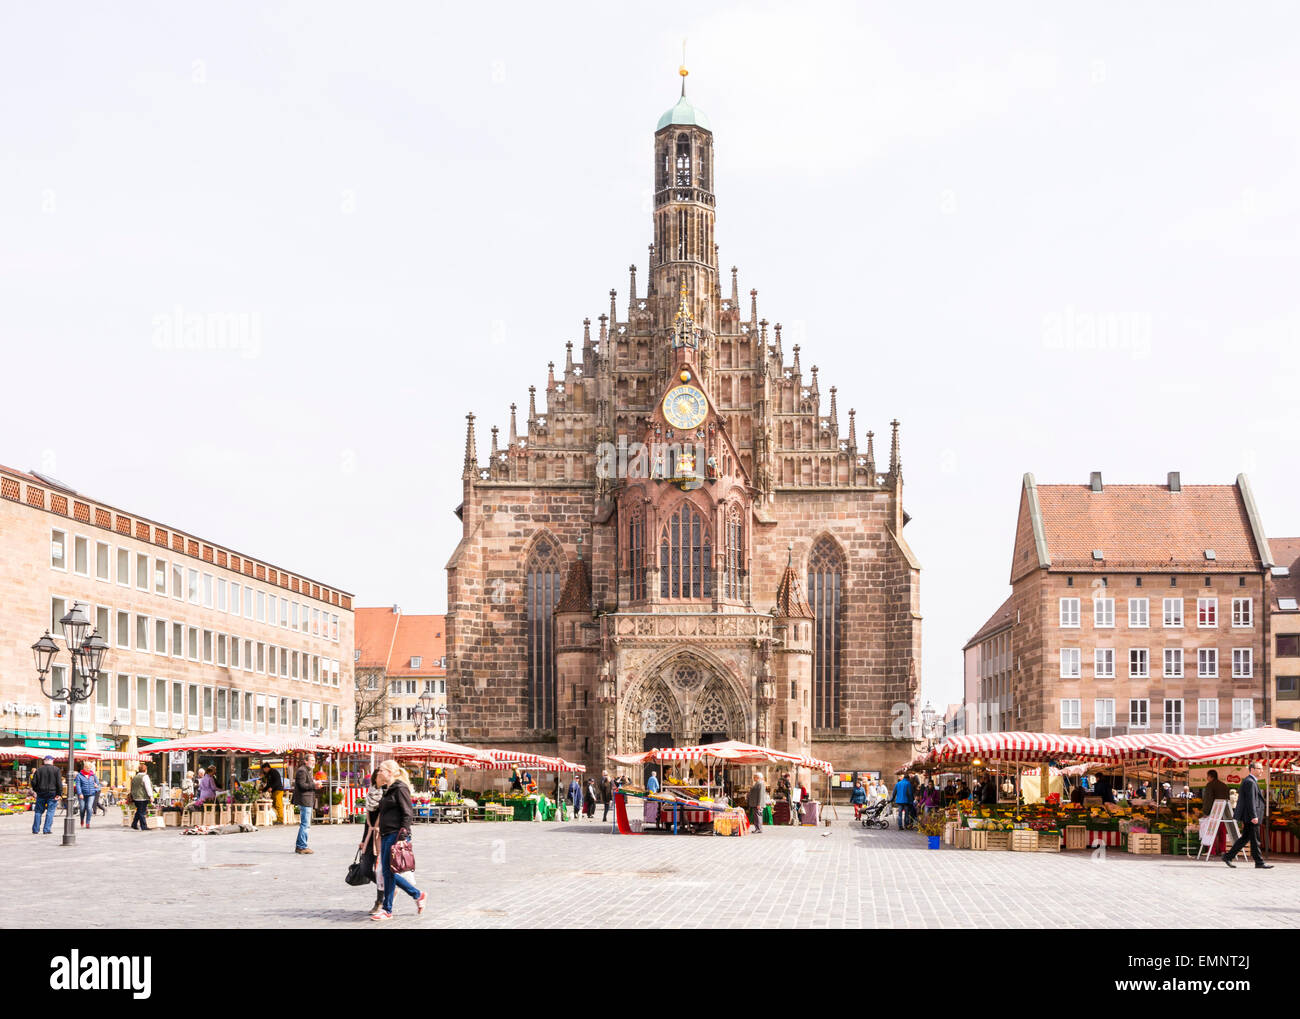 NUERNBERG, GERMANY - APRIL 9: Tourist at the Frauenkirche in Nuernberg, Germany on April 9, 2015. The church is - Stock Image